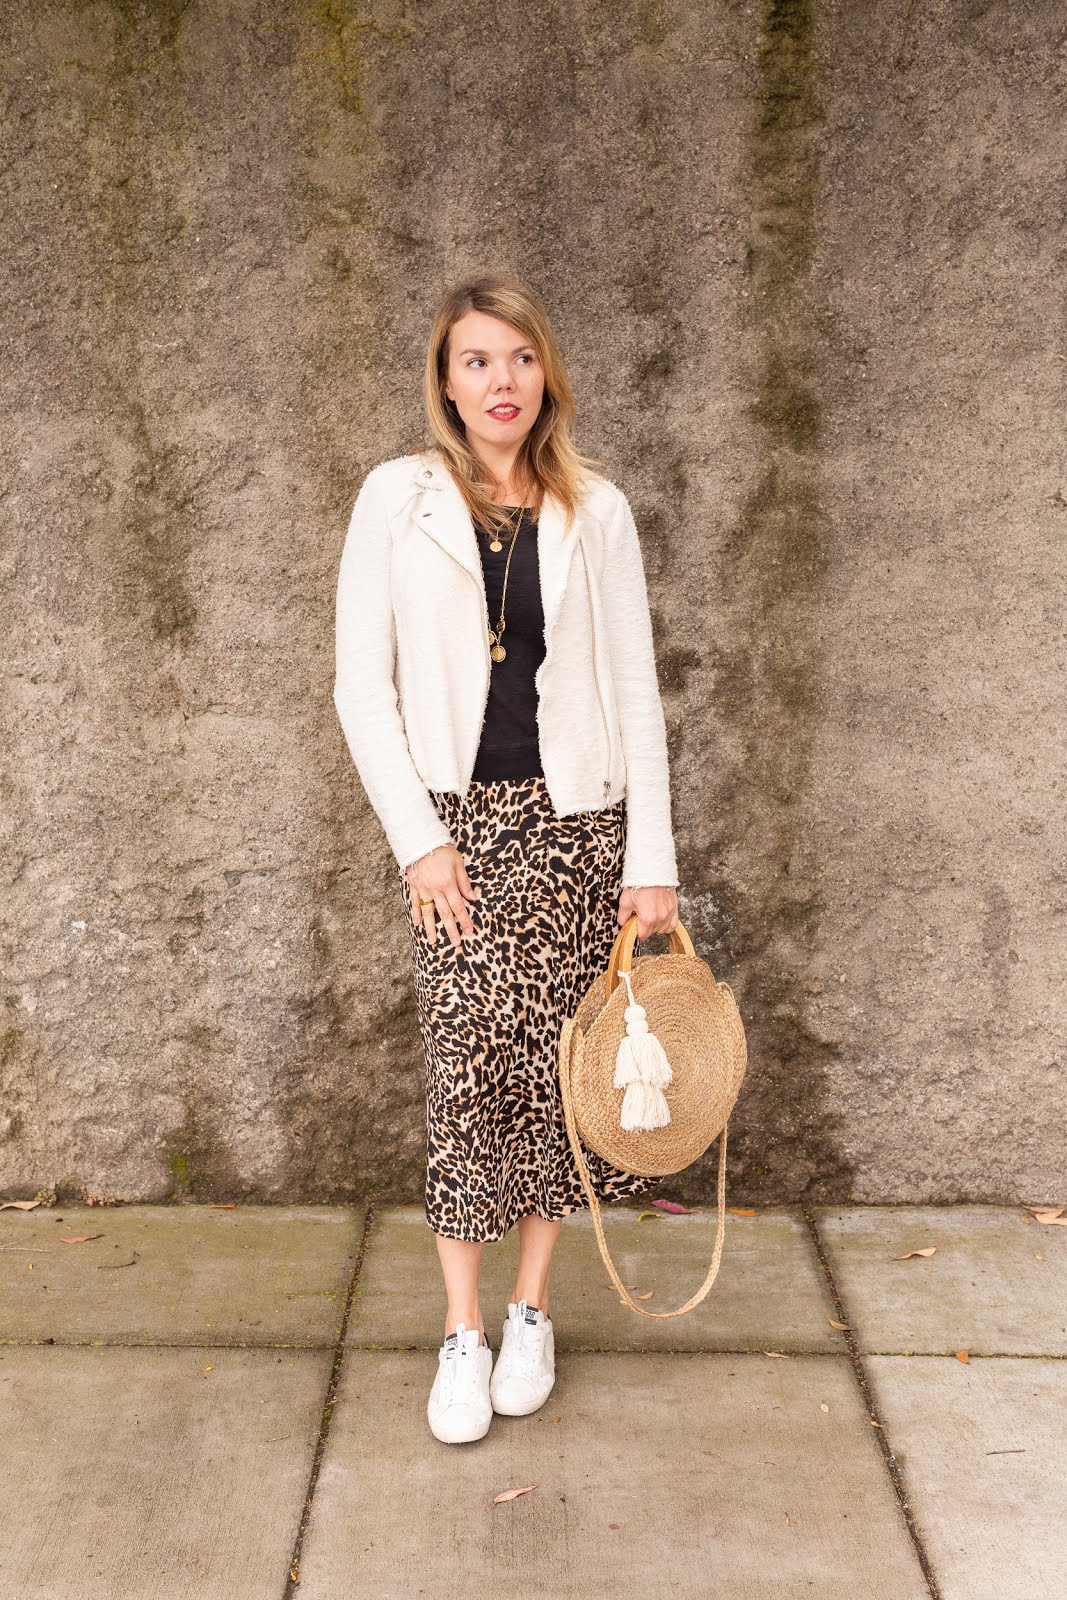 Giovanna Batlia Adds A Touch Of Glamour To Her Black Brown Outfit With Leopard